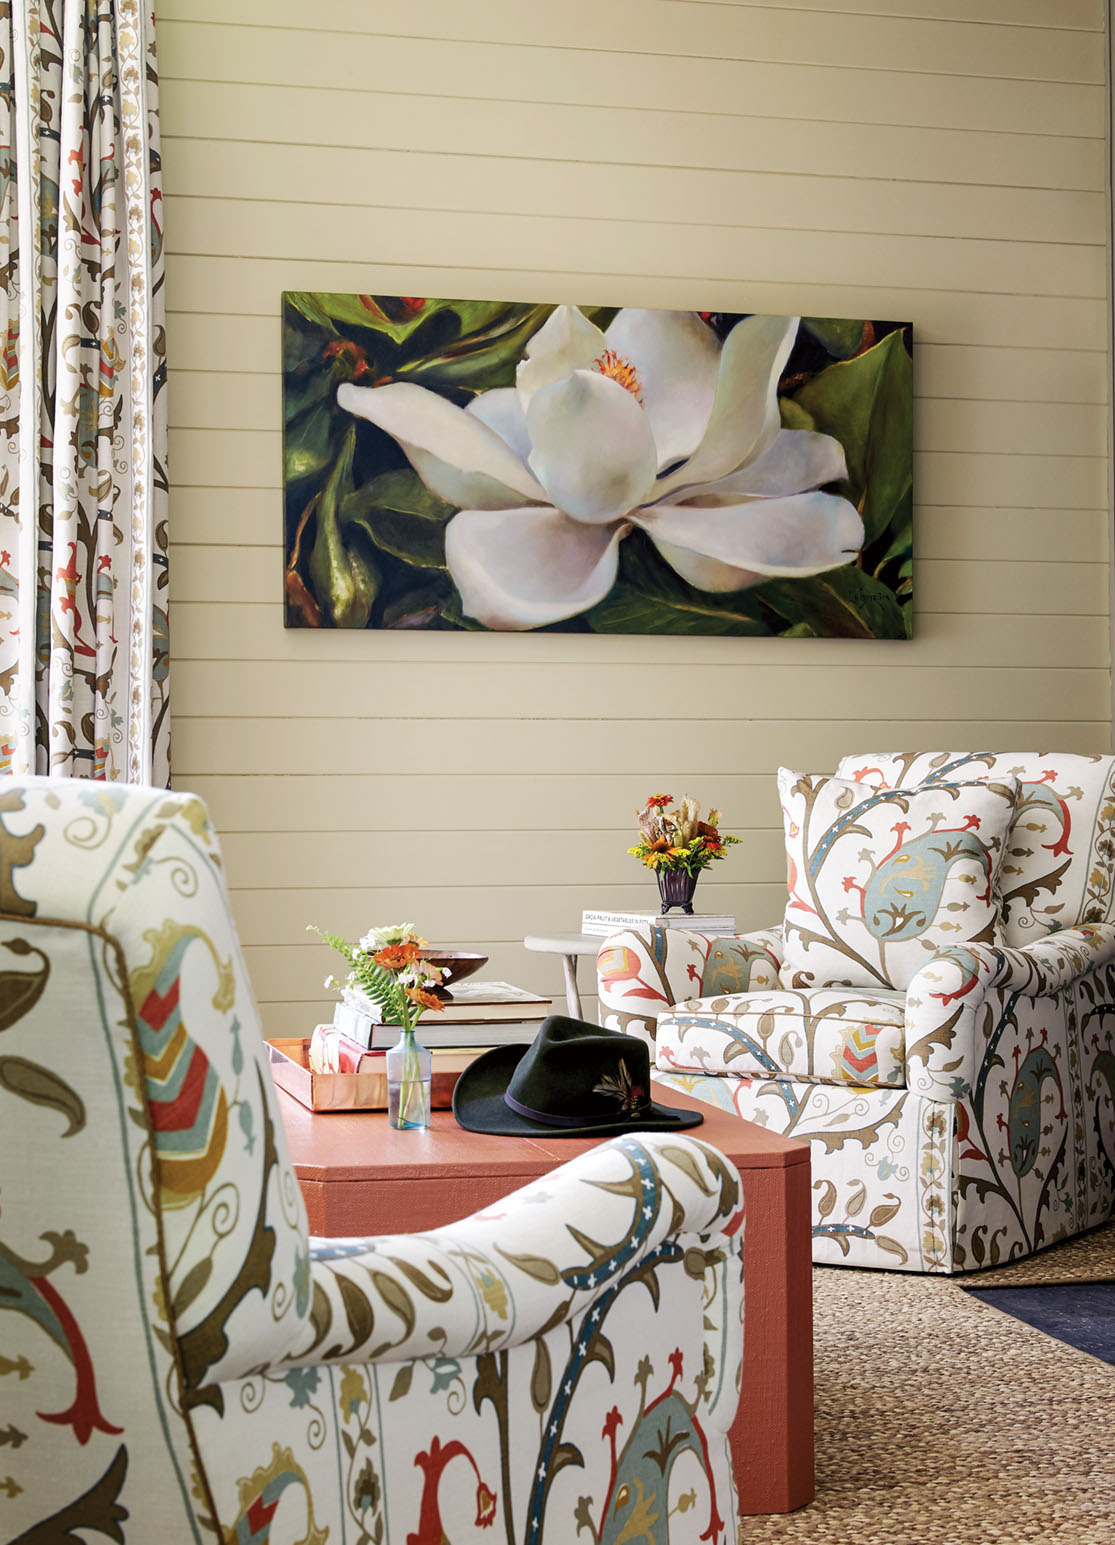 Flower magazine showhouse at Brierfield, living room seating, magnolia painting